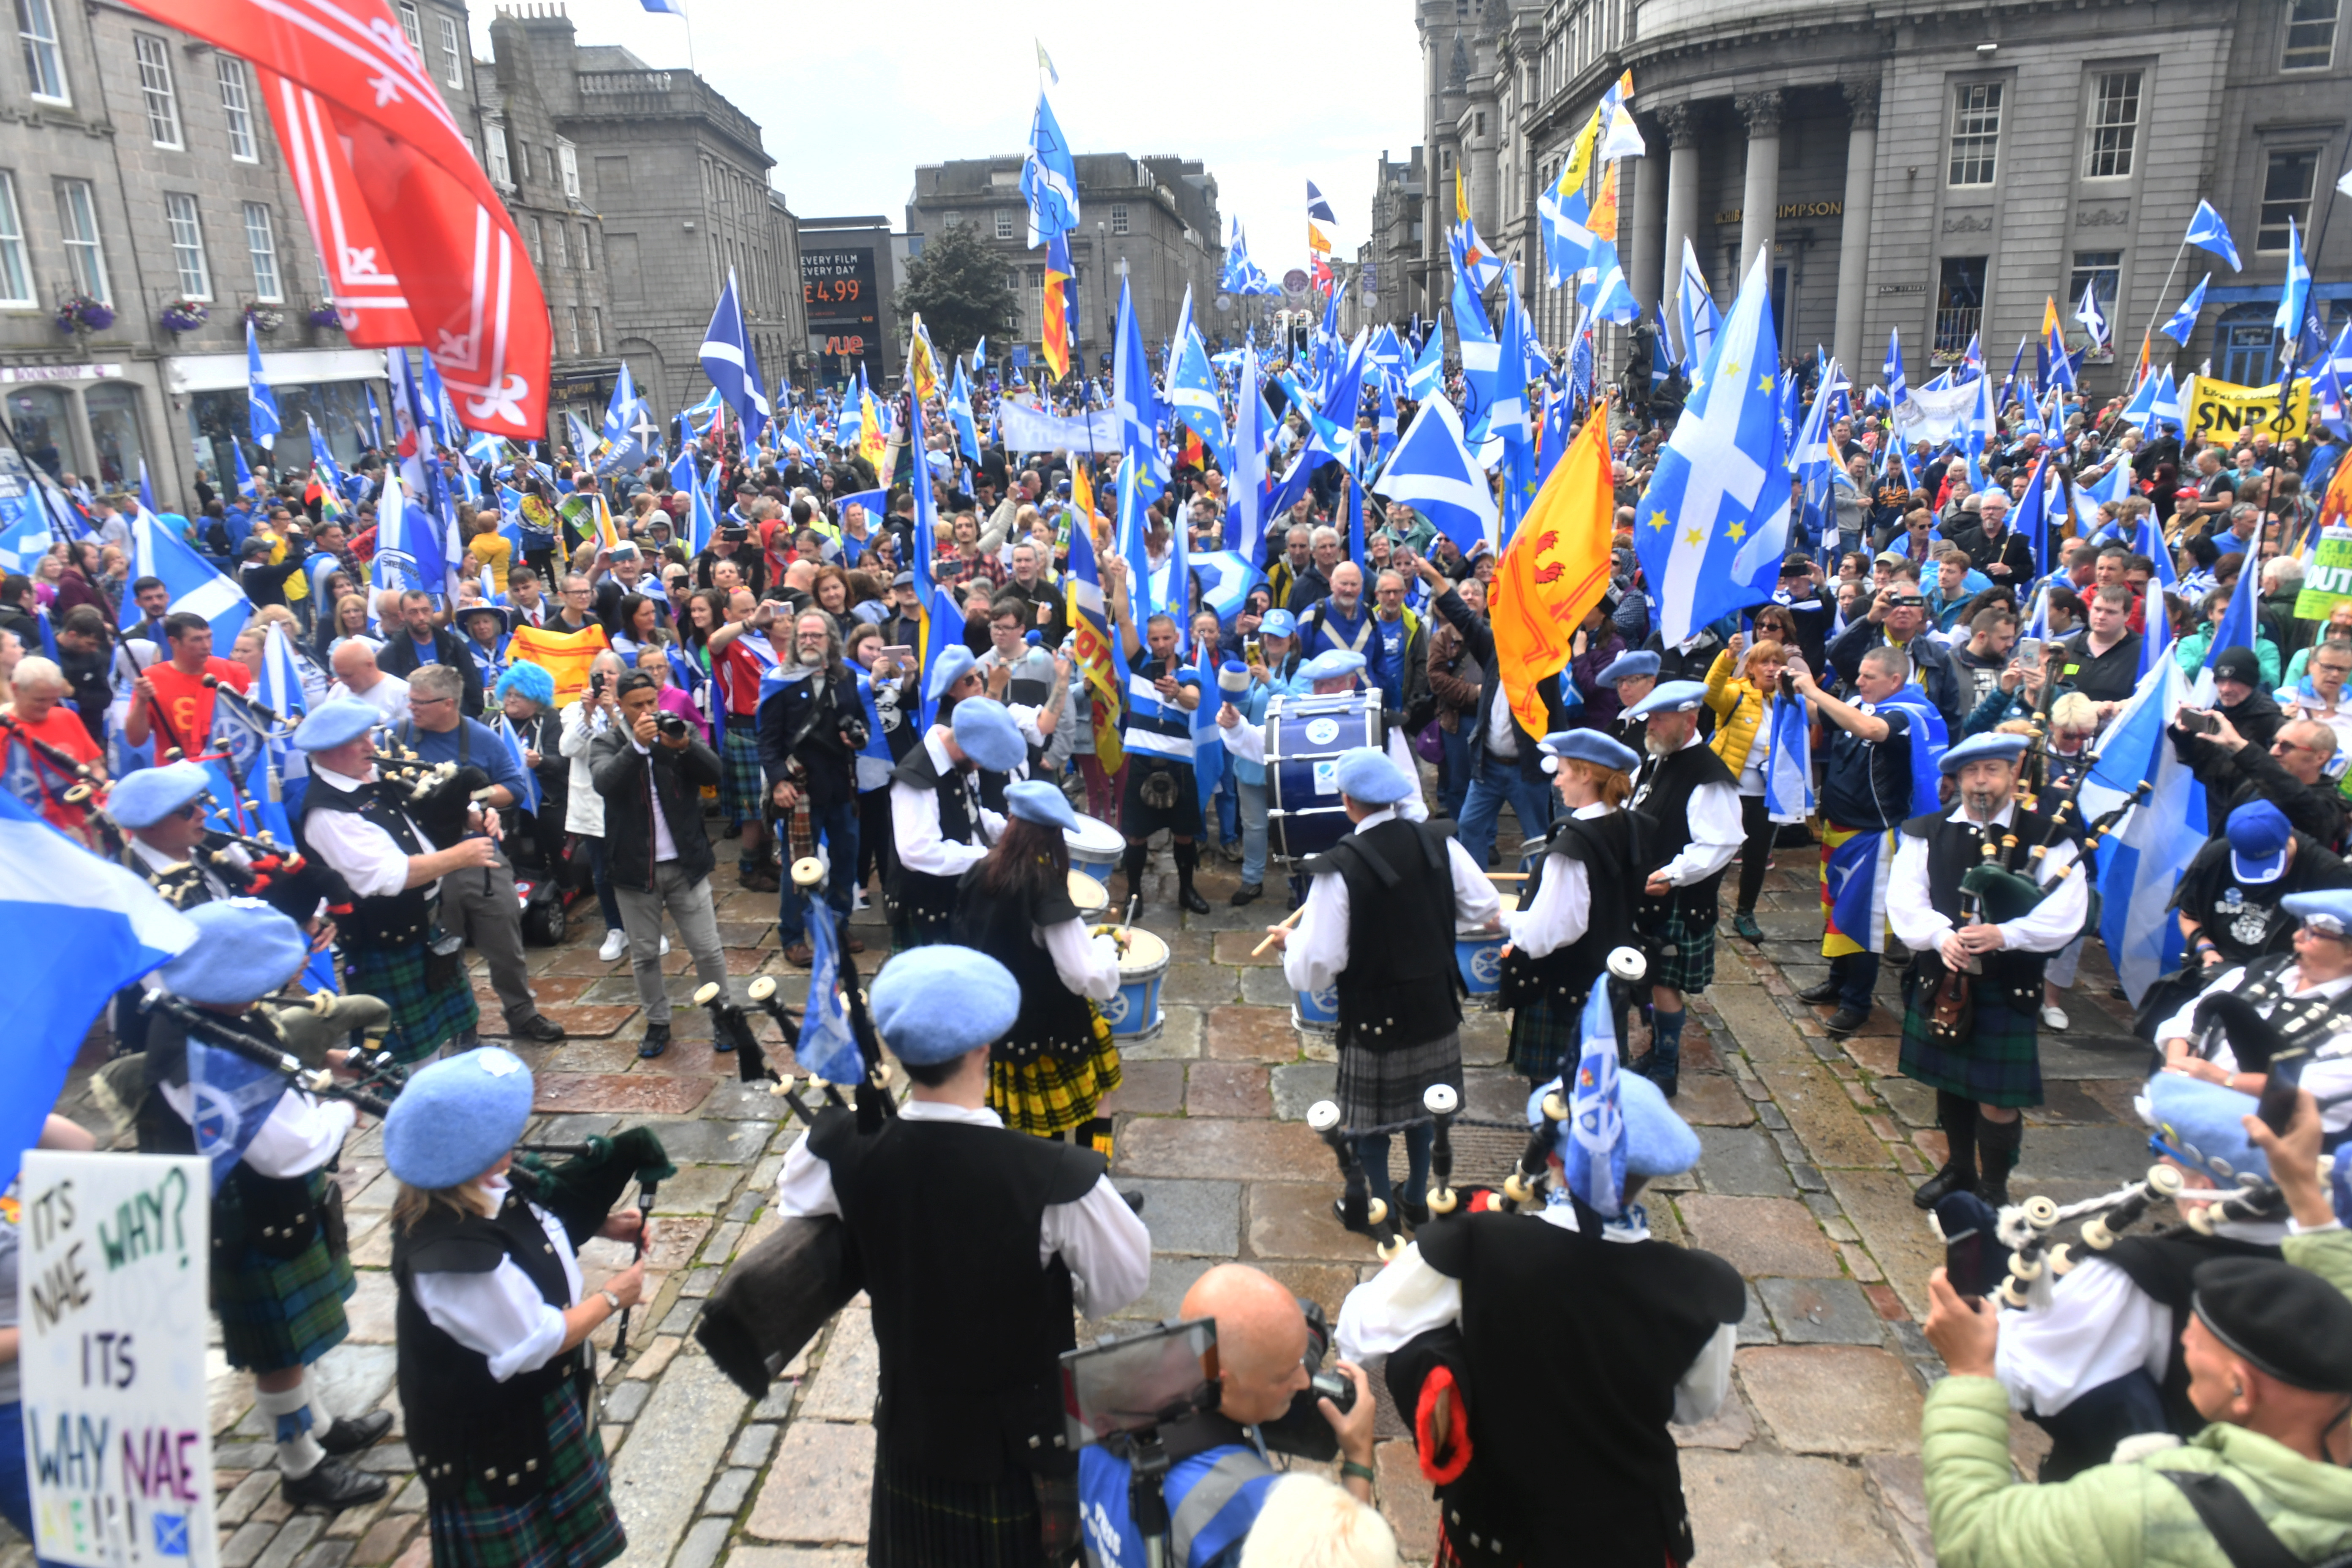 AUOB march in Aberdeen this year